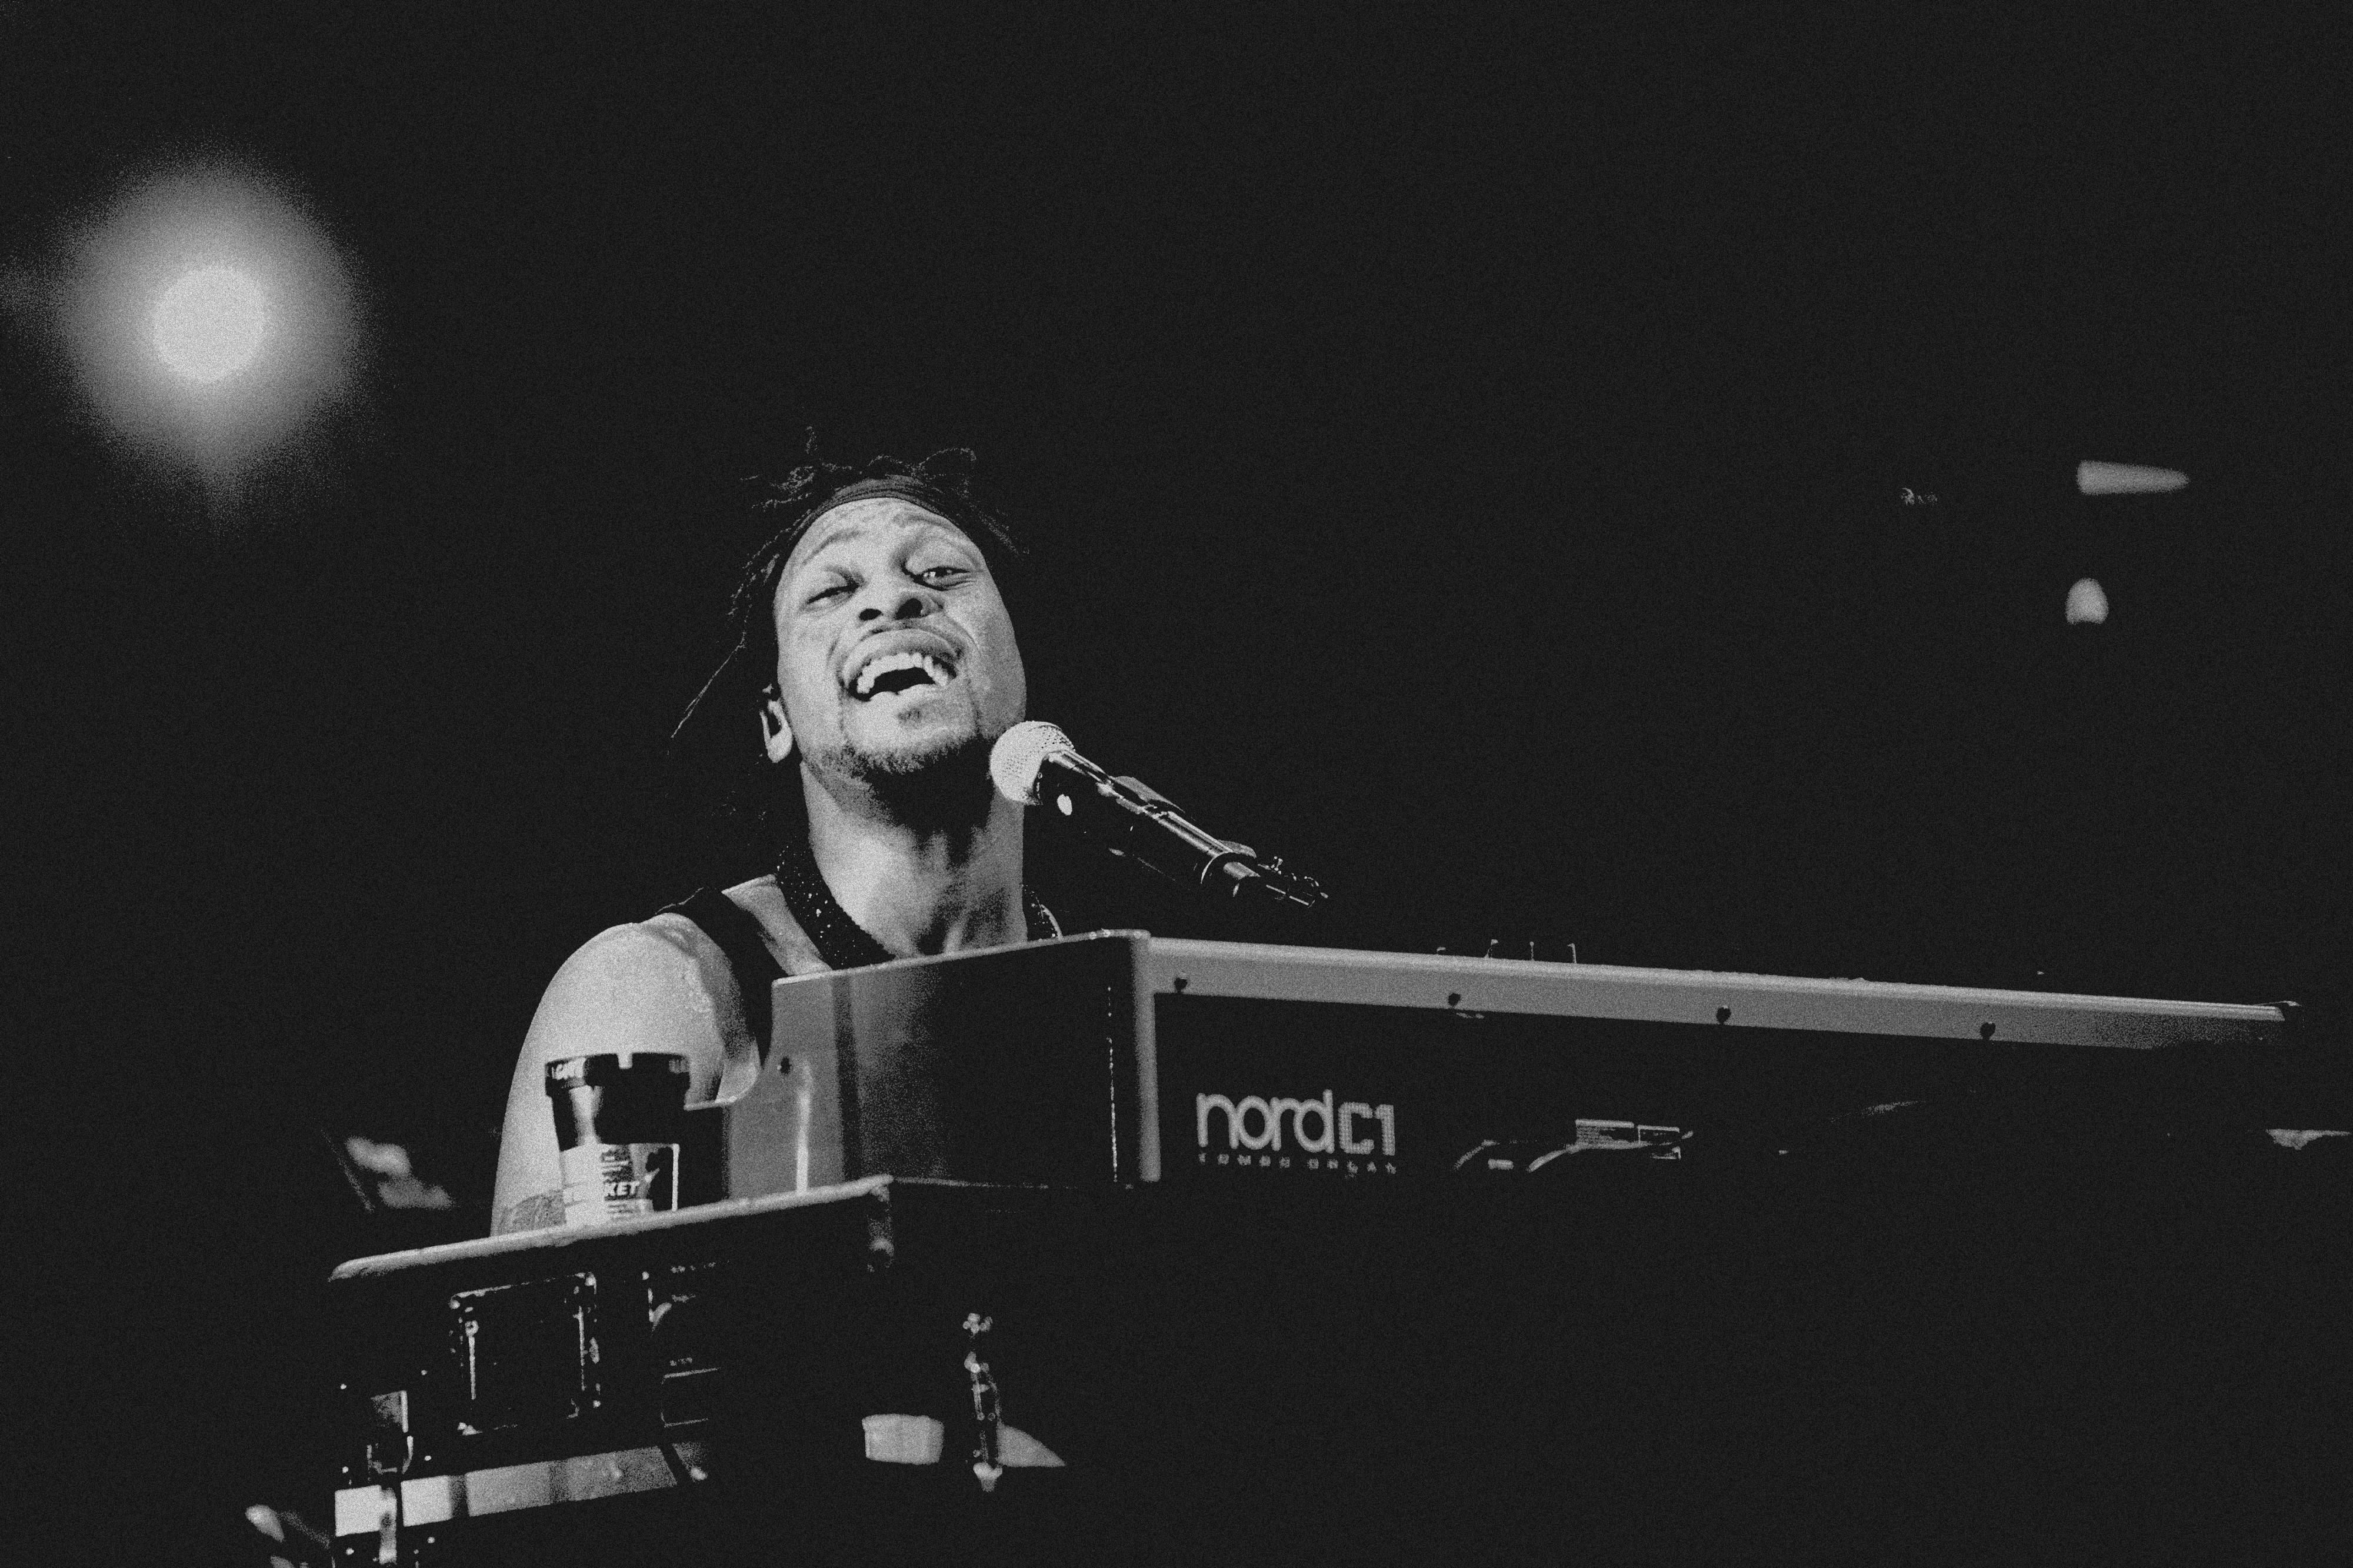 NYU Music Professor Gives D'Angelo An A+ - Cuepoint - Medium